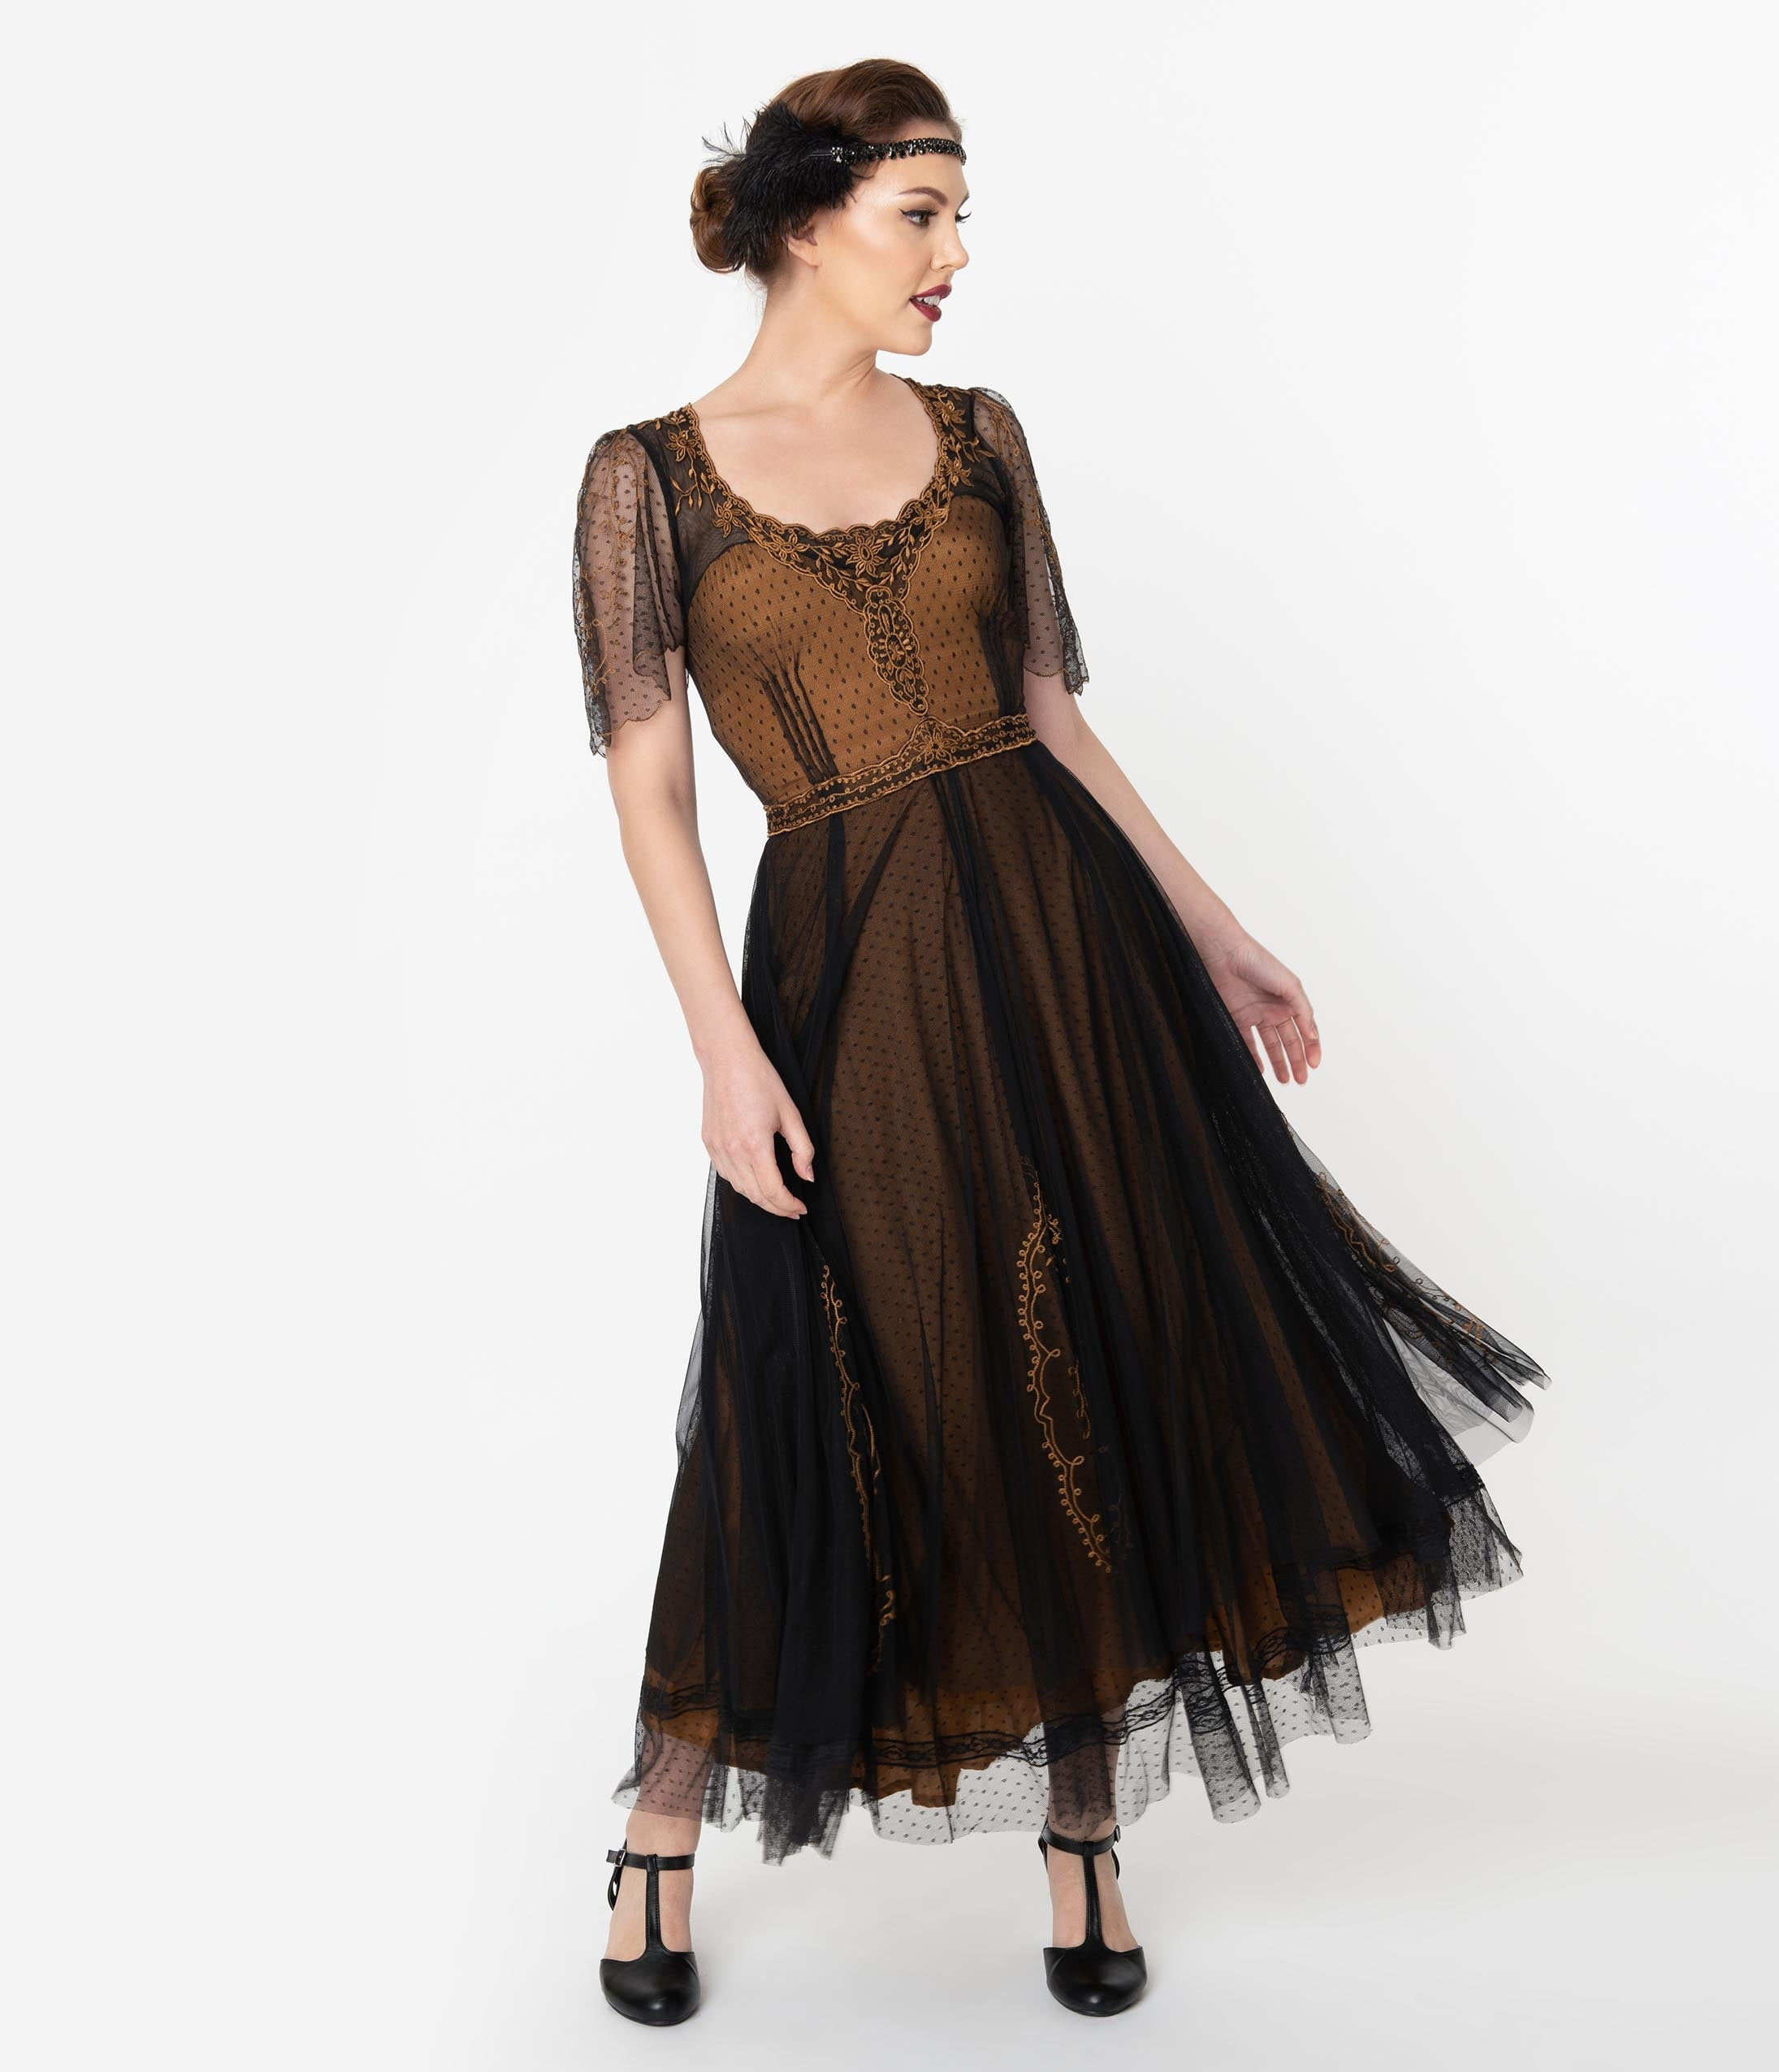 Edwardian Ladies Clothing – 1900, 1910s, Titanic Era Vintage Style Black  Gold Embroidered Mesh Edwardian Gown $289.00 AT vintagedancer.com